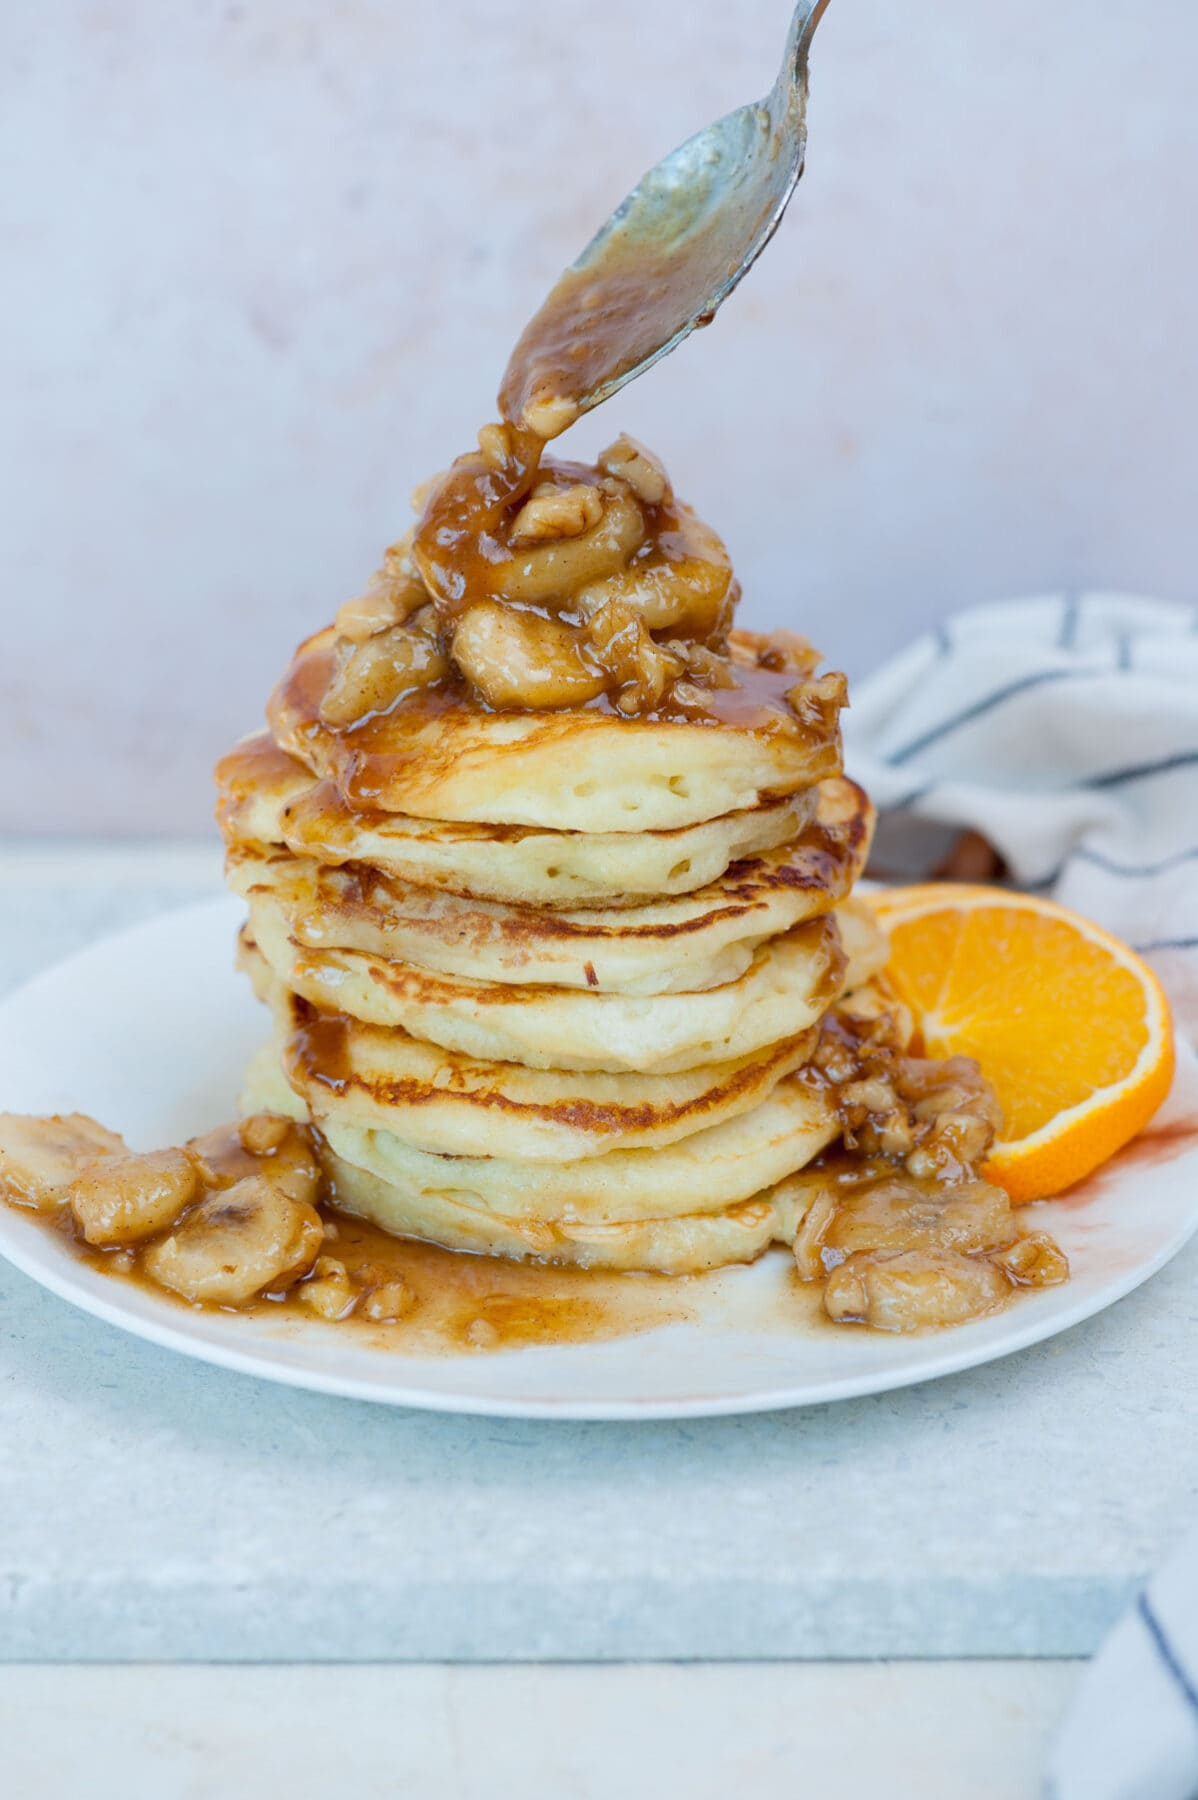 Bananas foster topping is being spooned over a stack of pancakes.